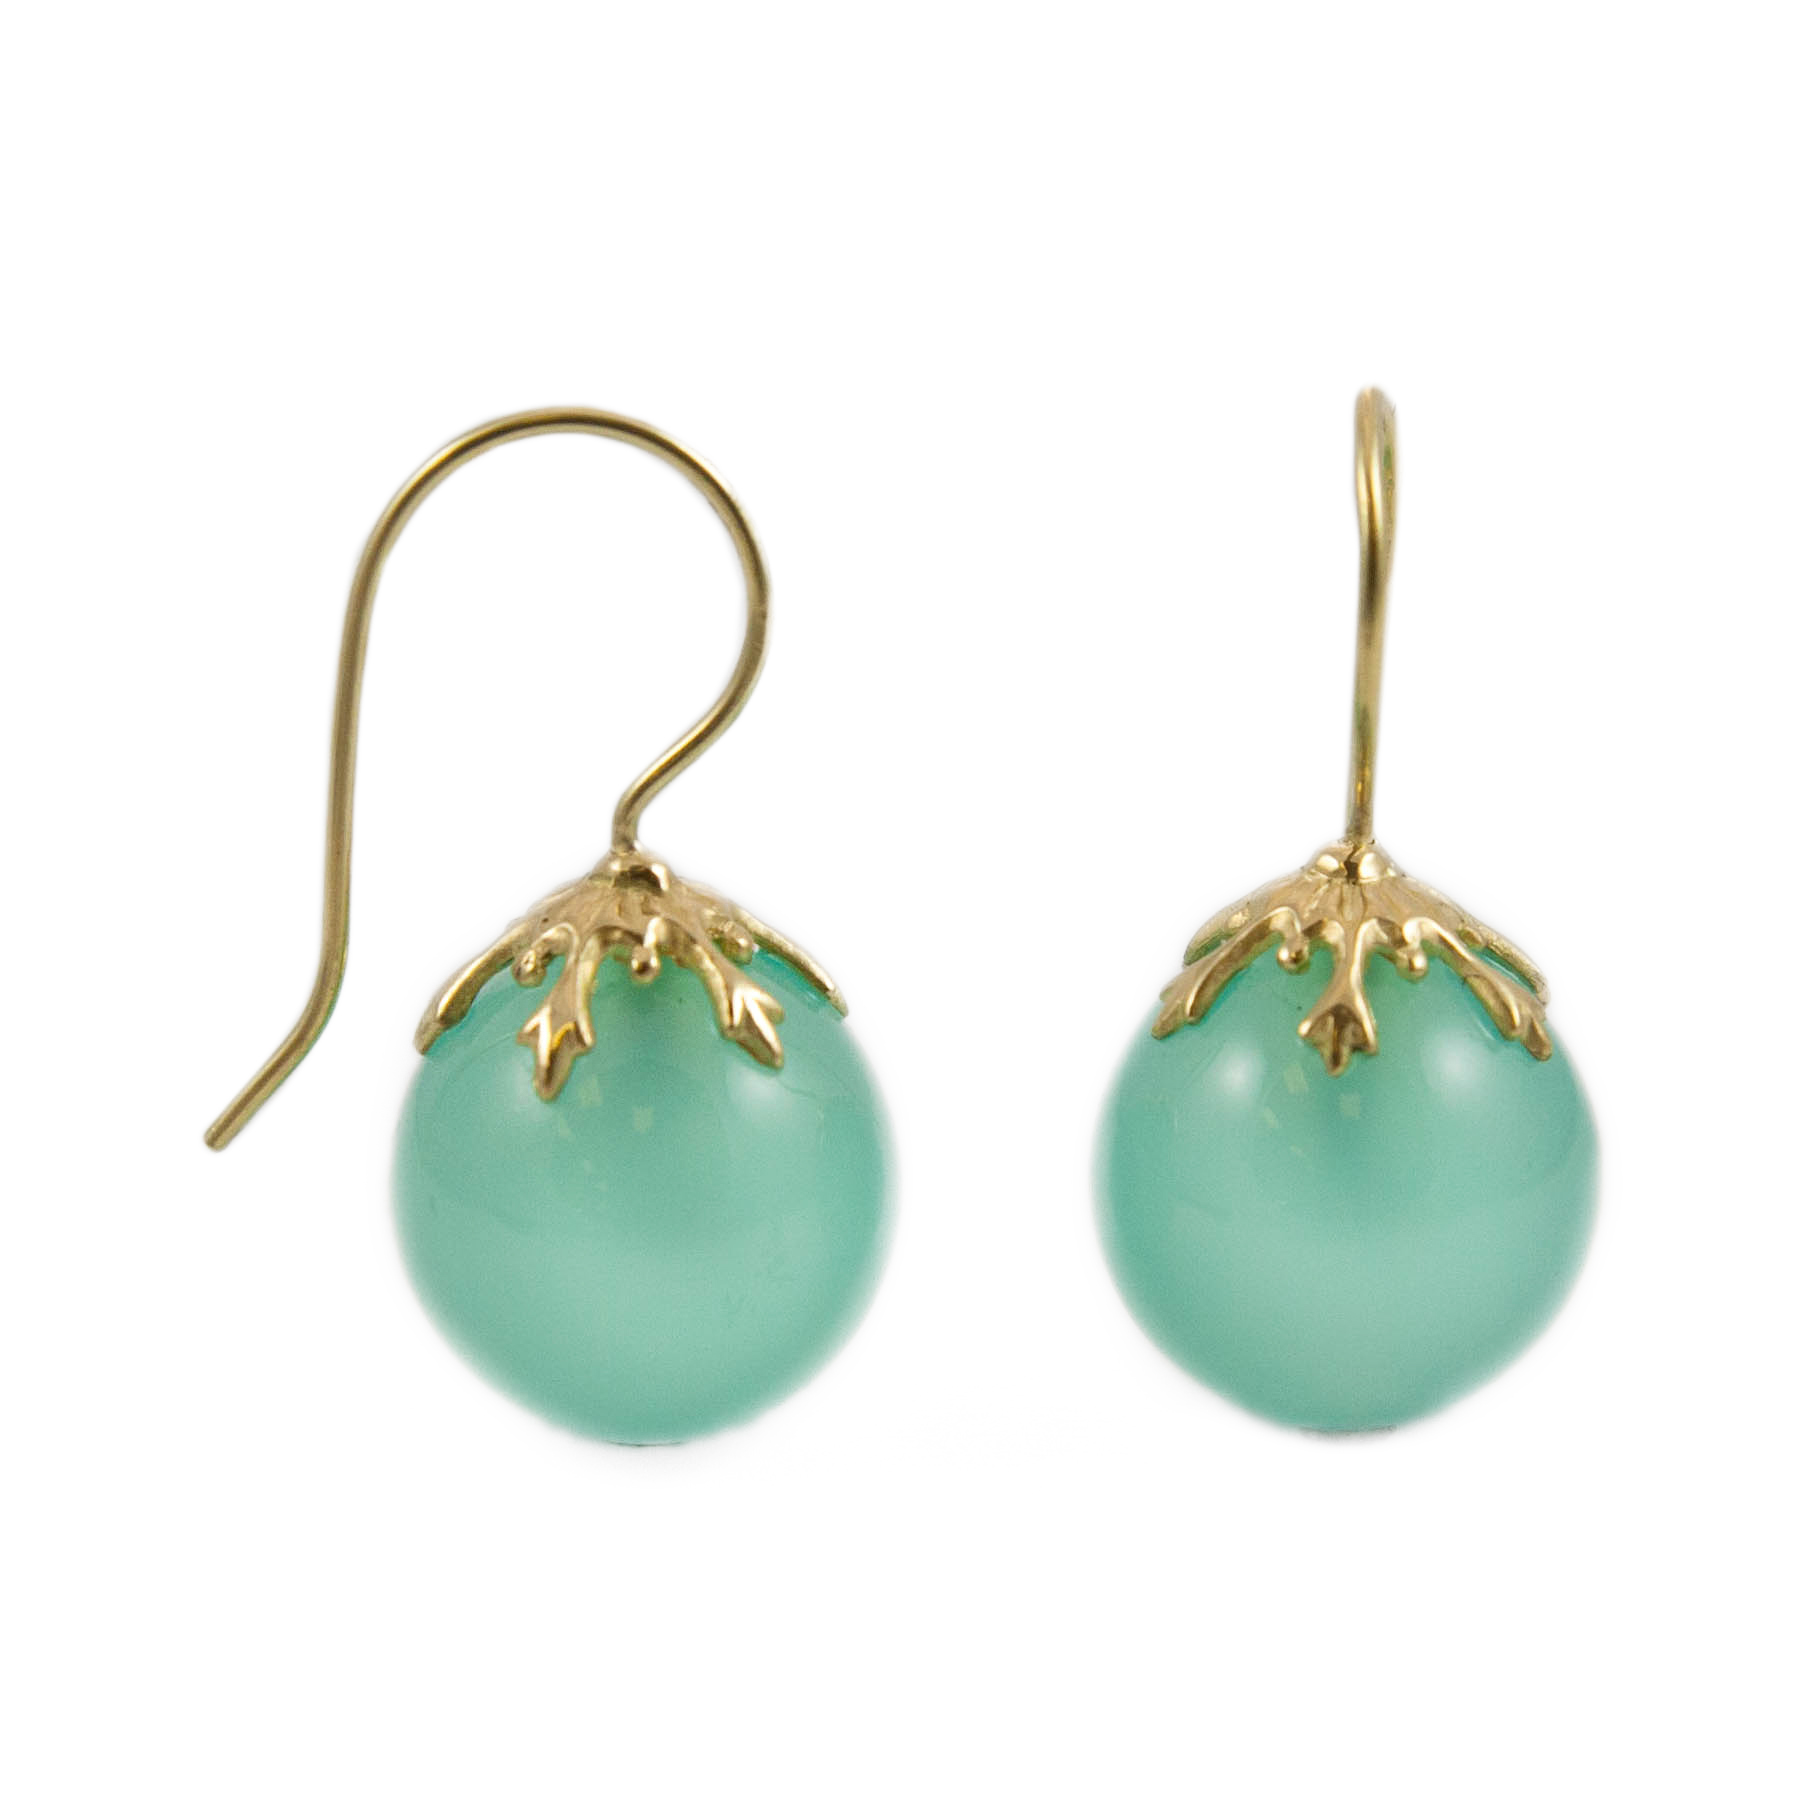 CESCA aqua ball earrings claw cap EDITED.jpg